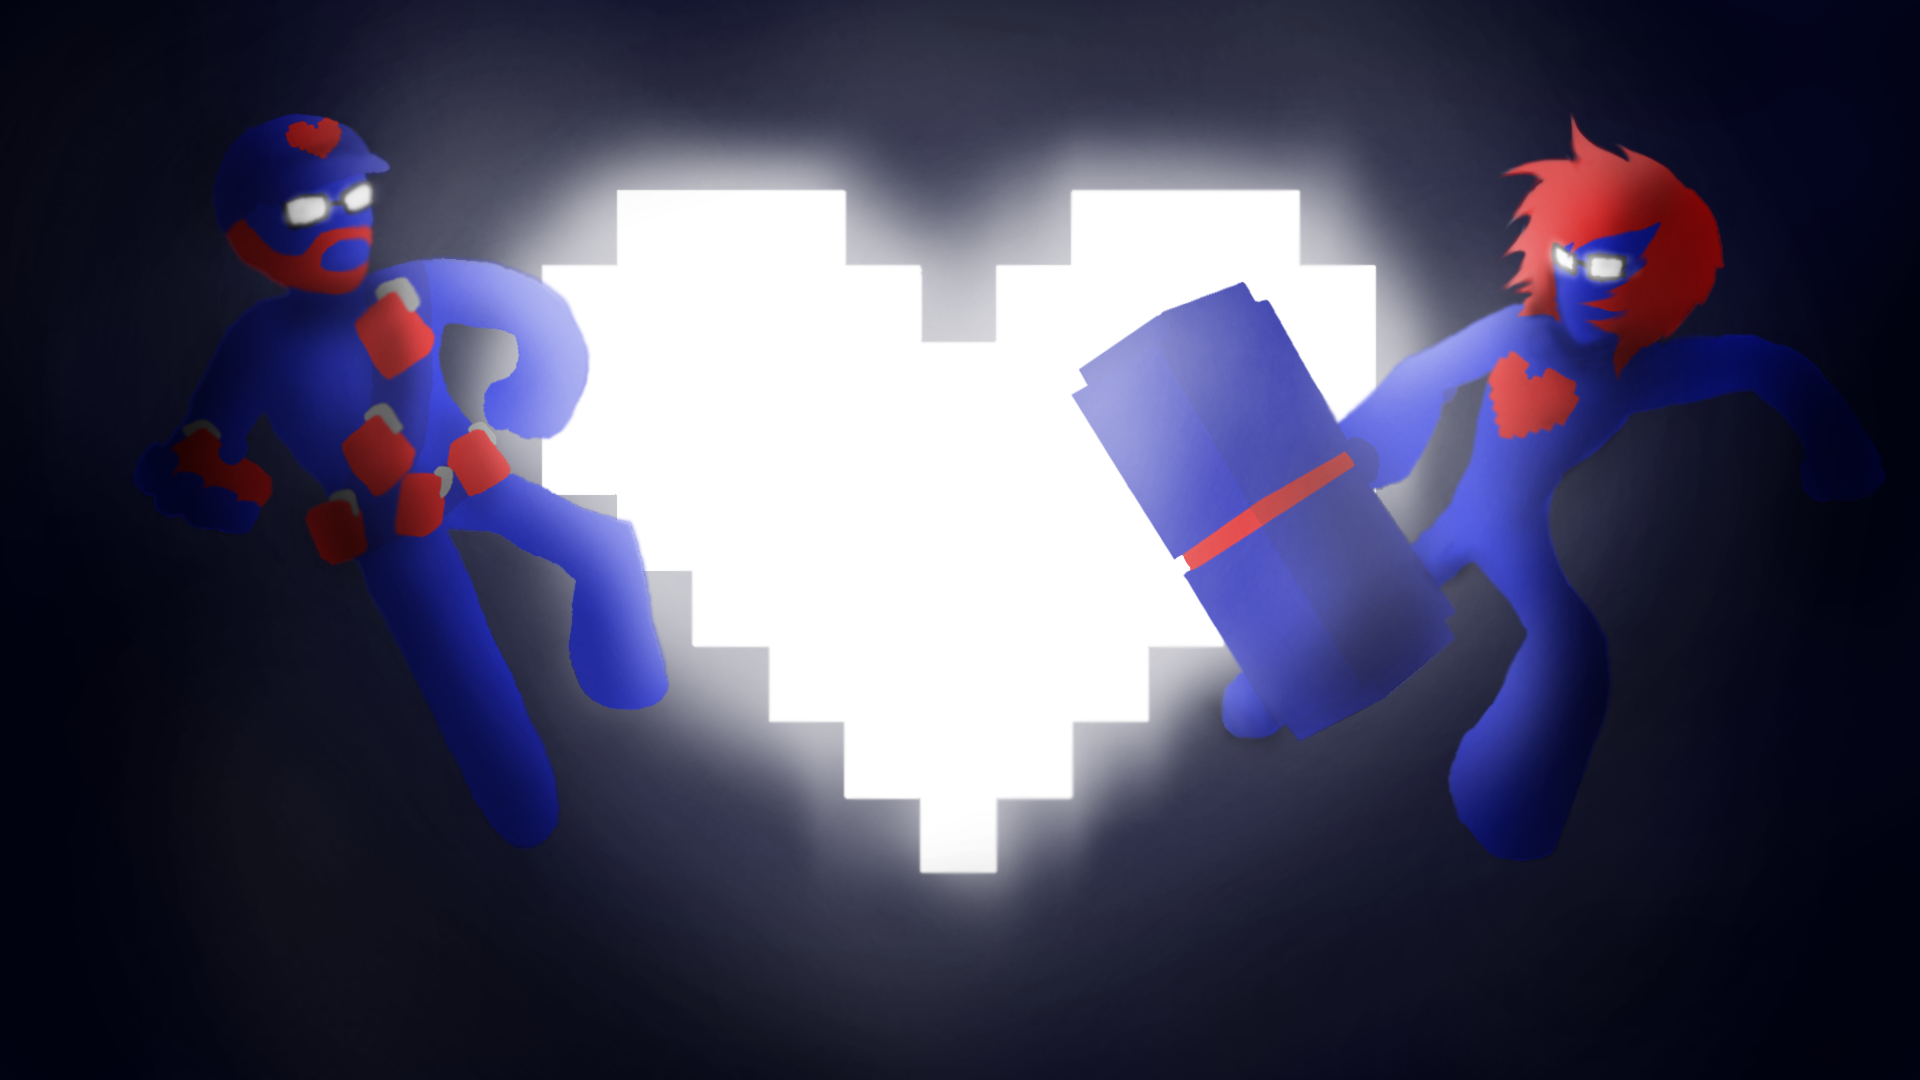 Free download Pegboard Nerds Wallpaper Wallpaper Requests to